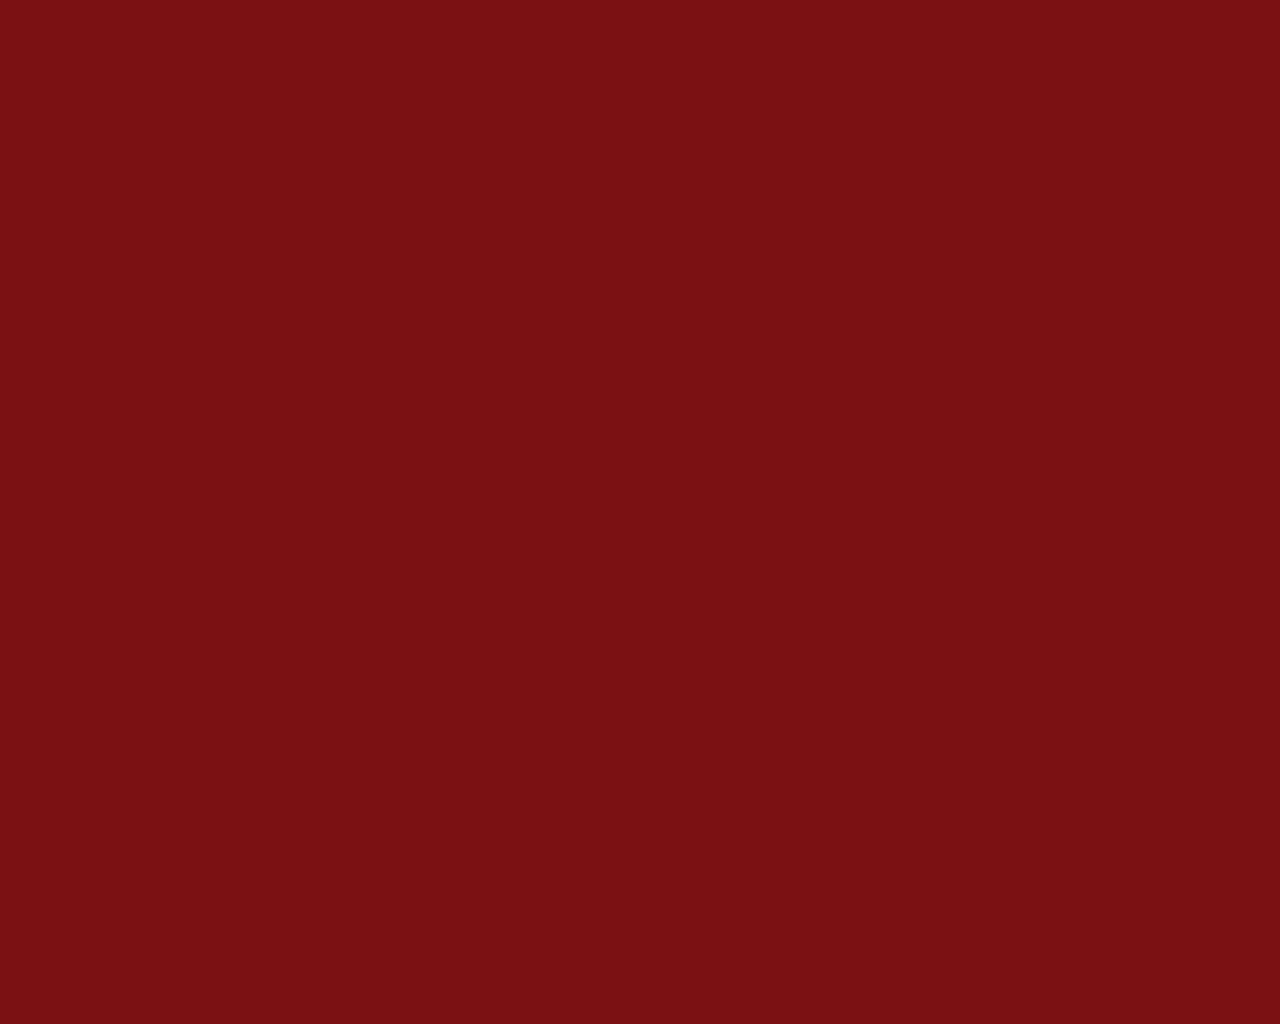 Maroon plain wallpaper